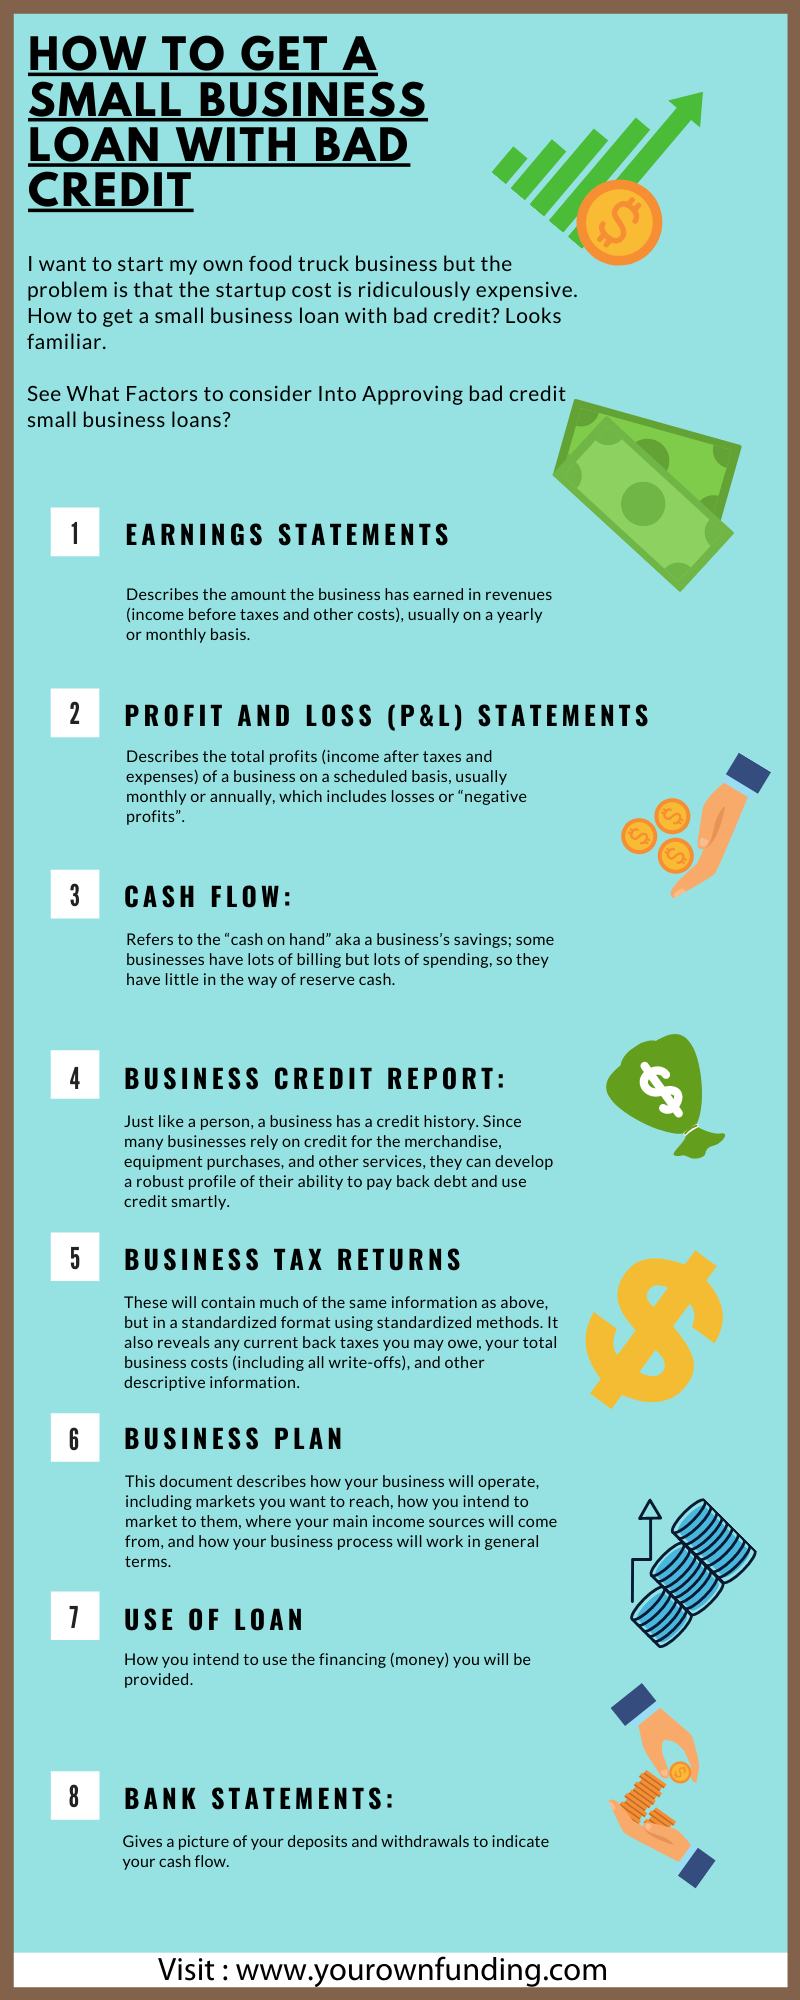 How To Get A Small Business Loan With Bad Credit In 2020 Loans For Bad Credit Bad Credit Business Loans